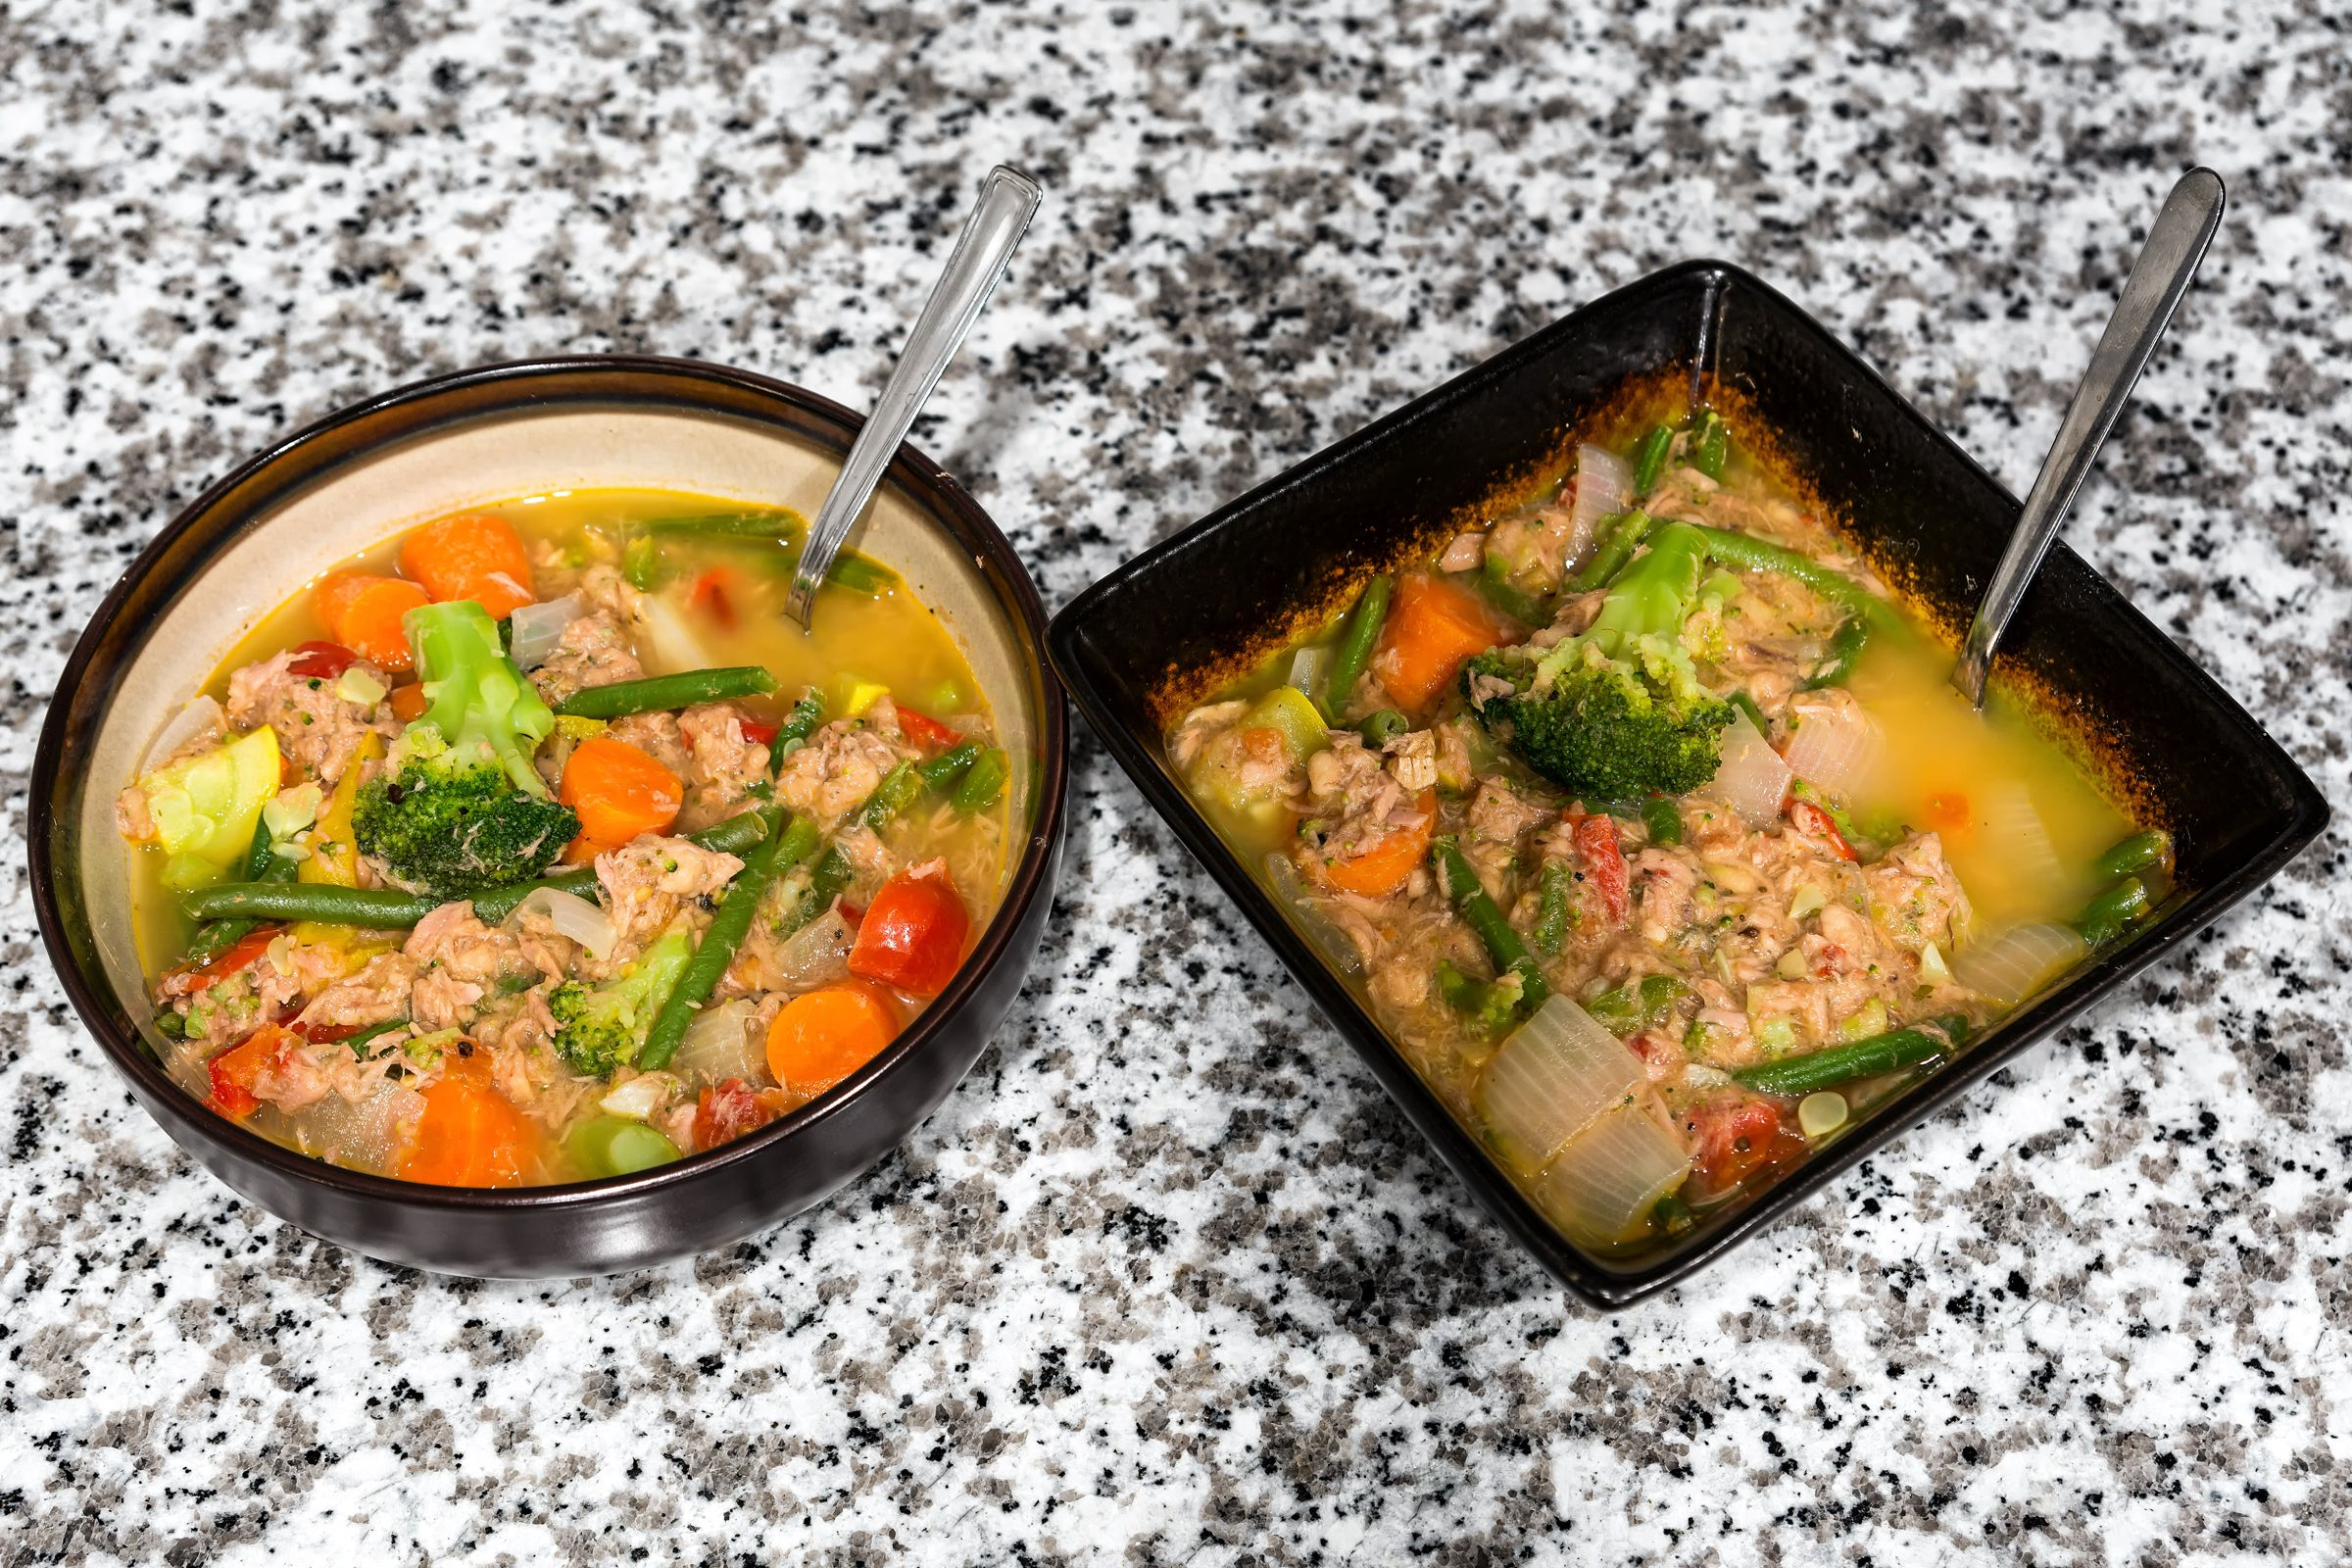 Flavor Amp Filling Tuna Veggie Soup Only 240 Calories